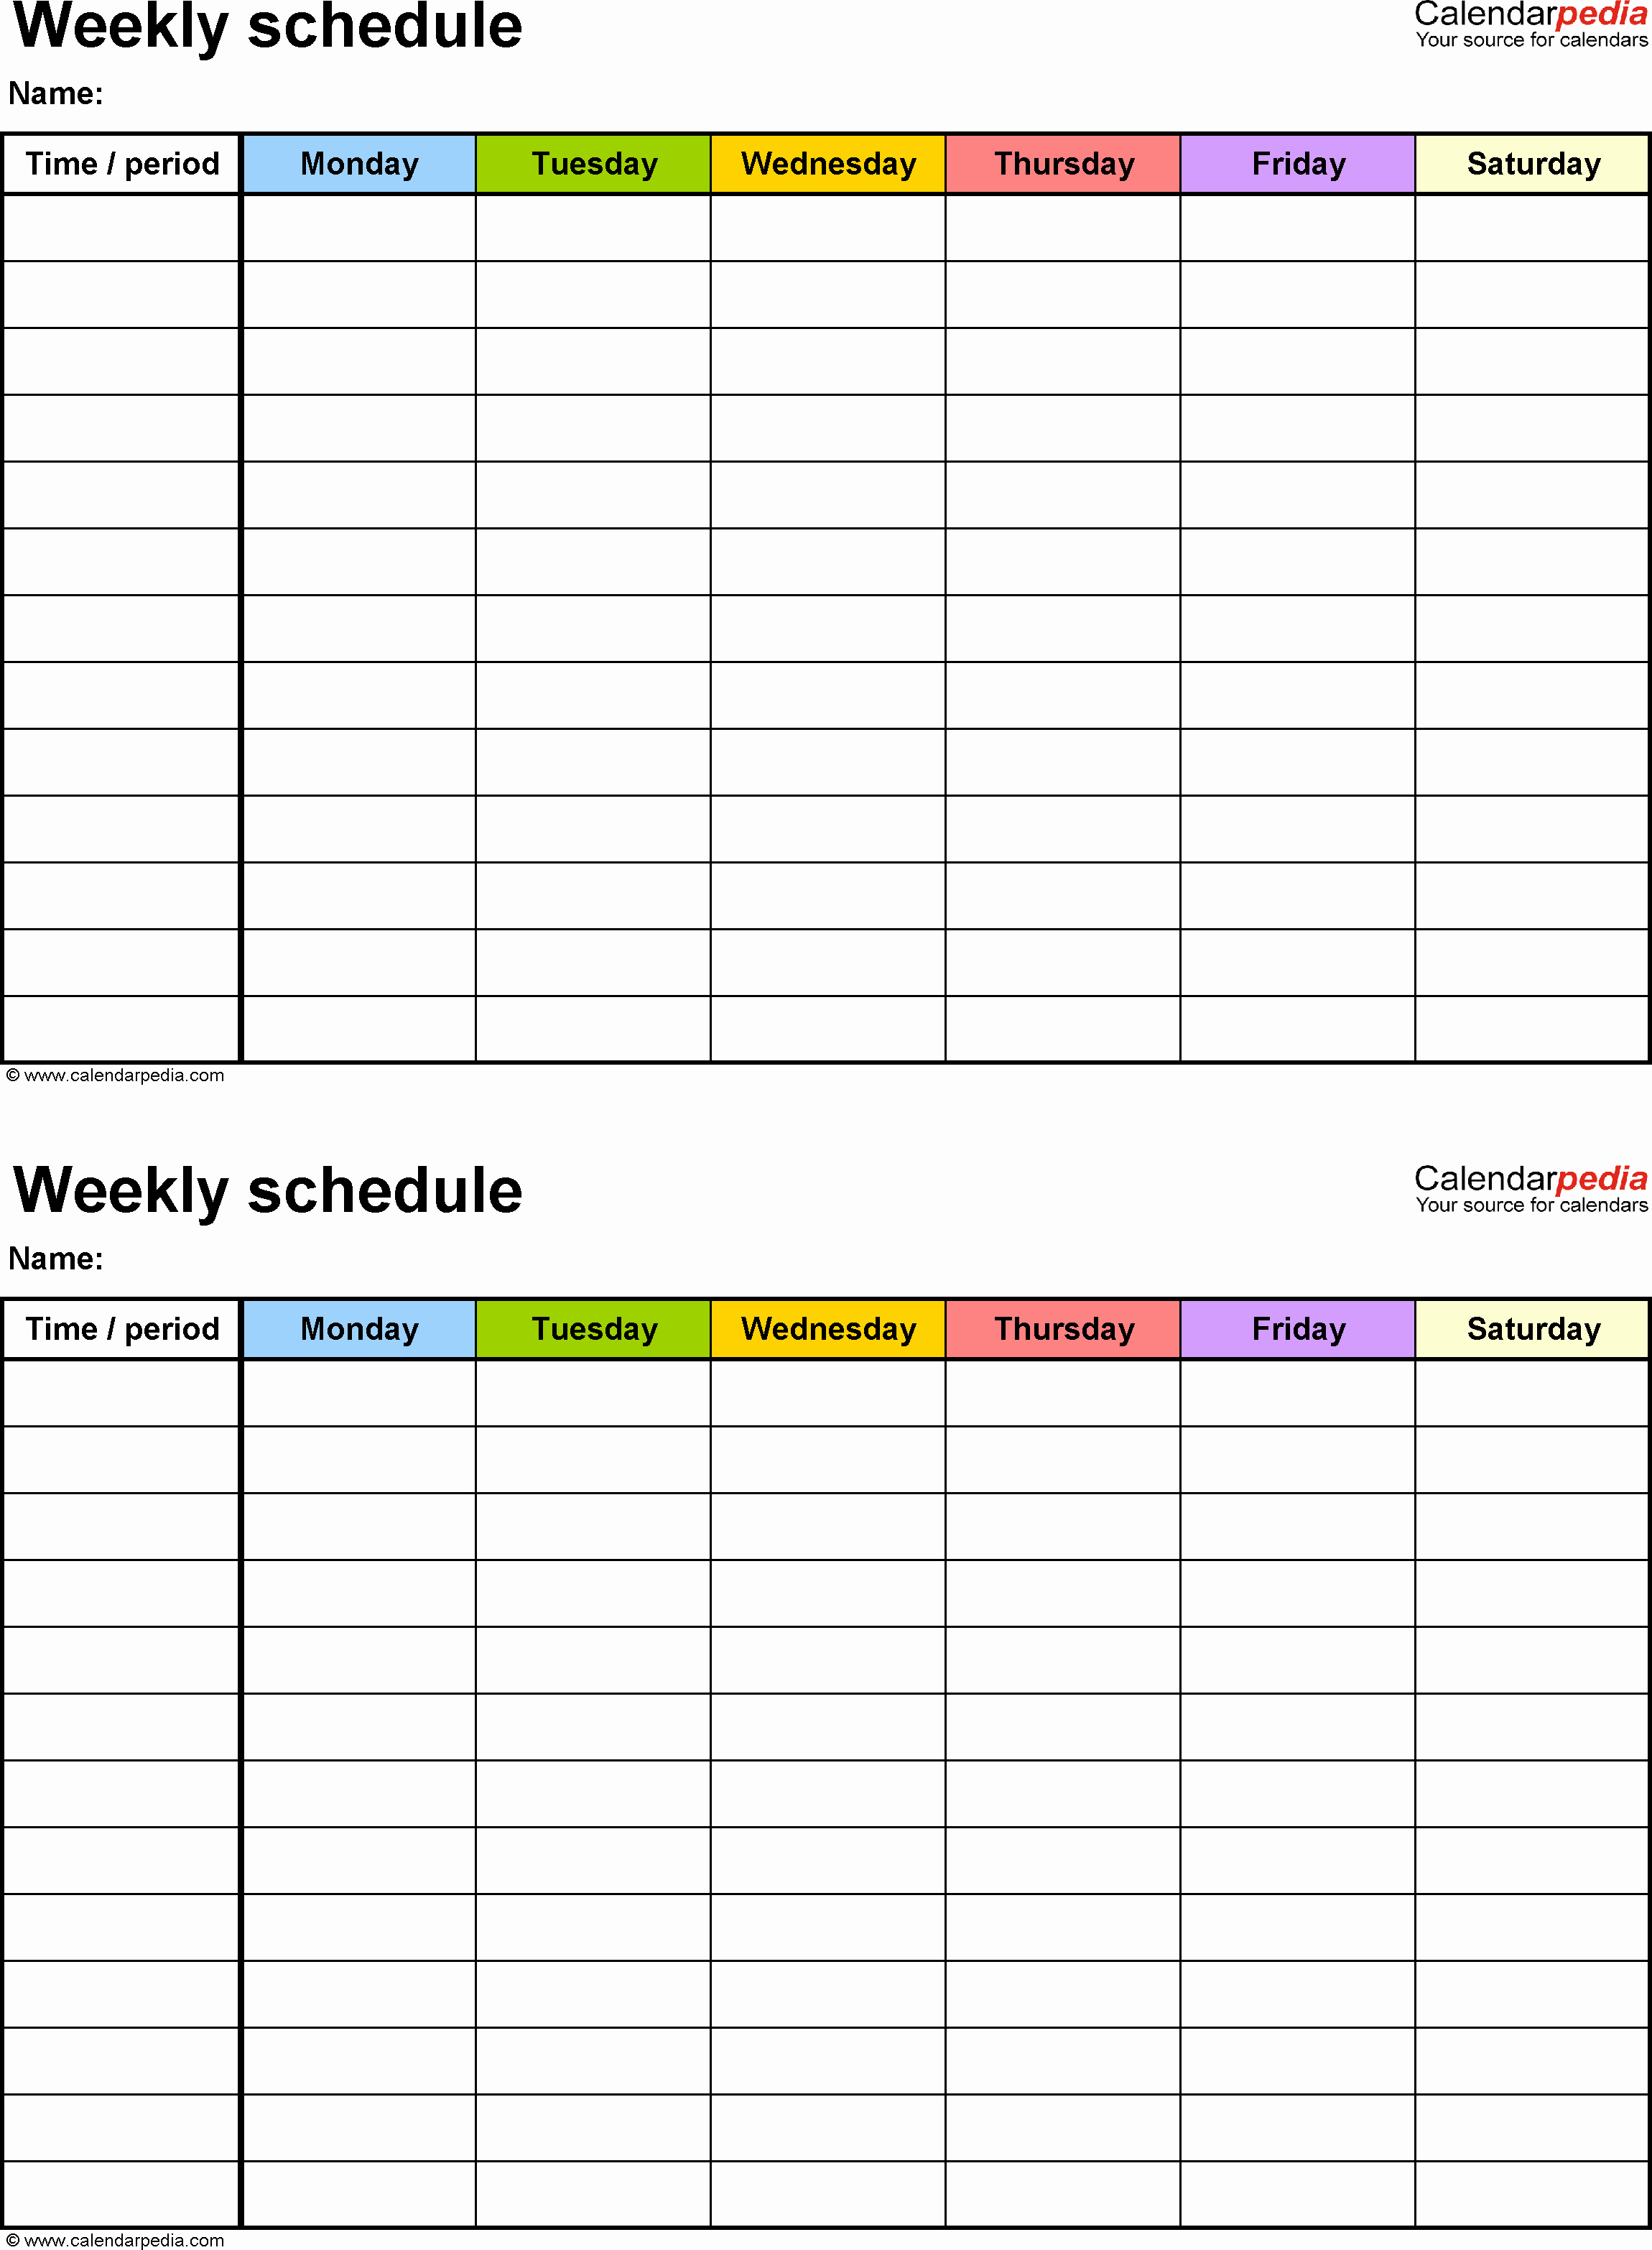 Blank One Week Calendar Awesome Weekly Schedule Template for Word Version 9 2 Schedules